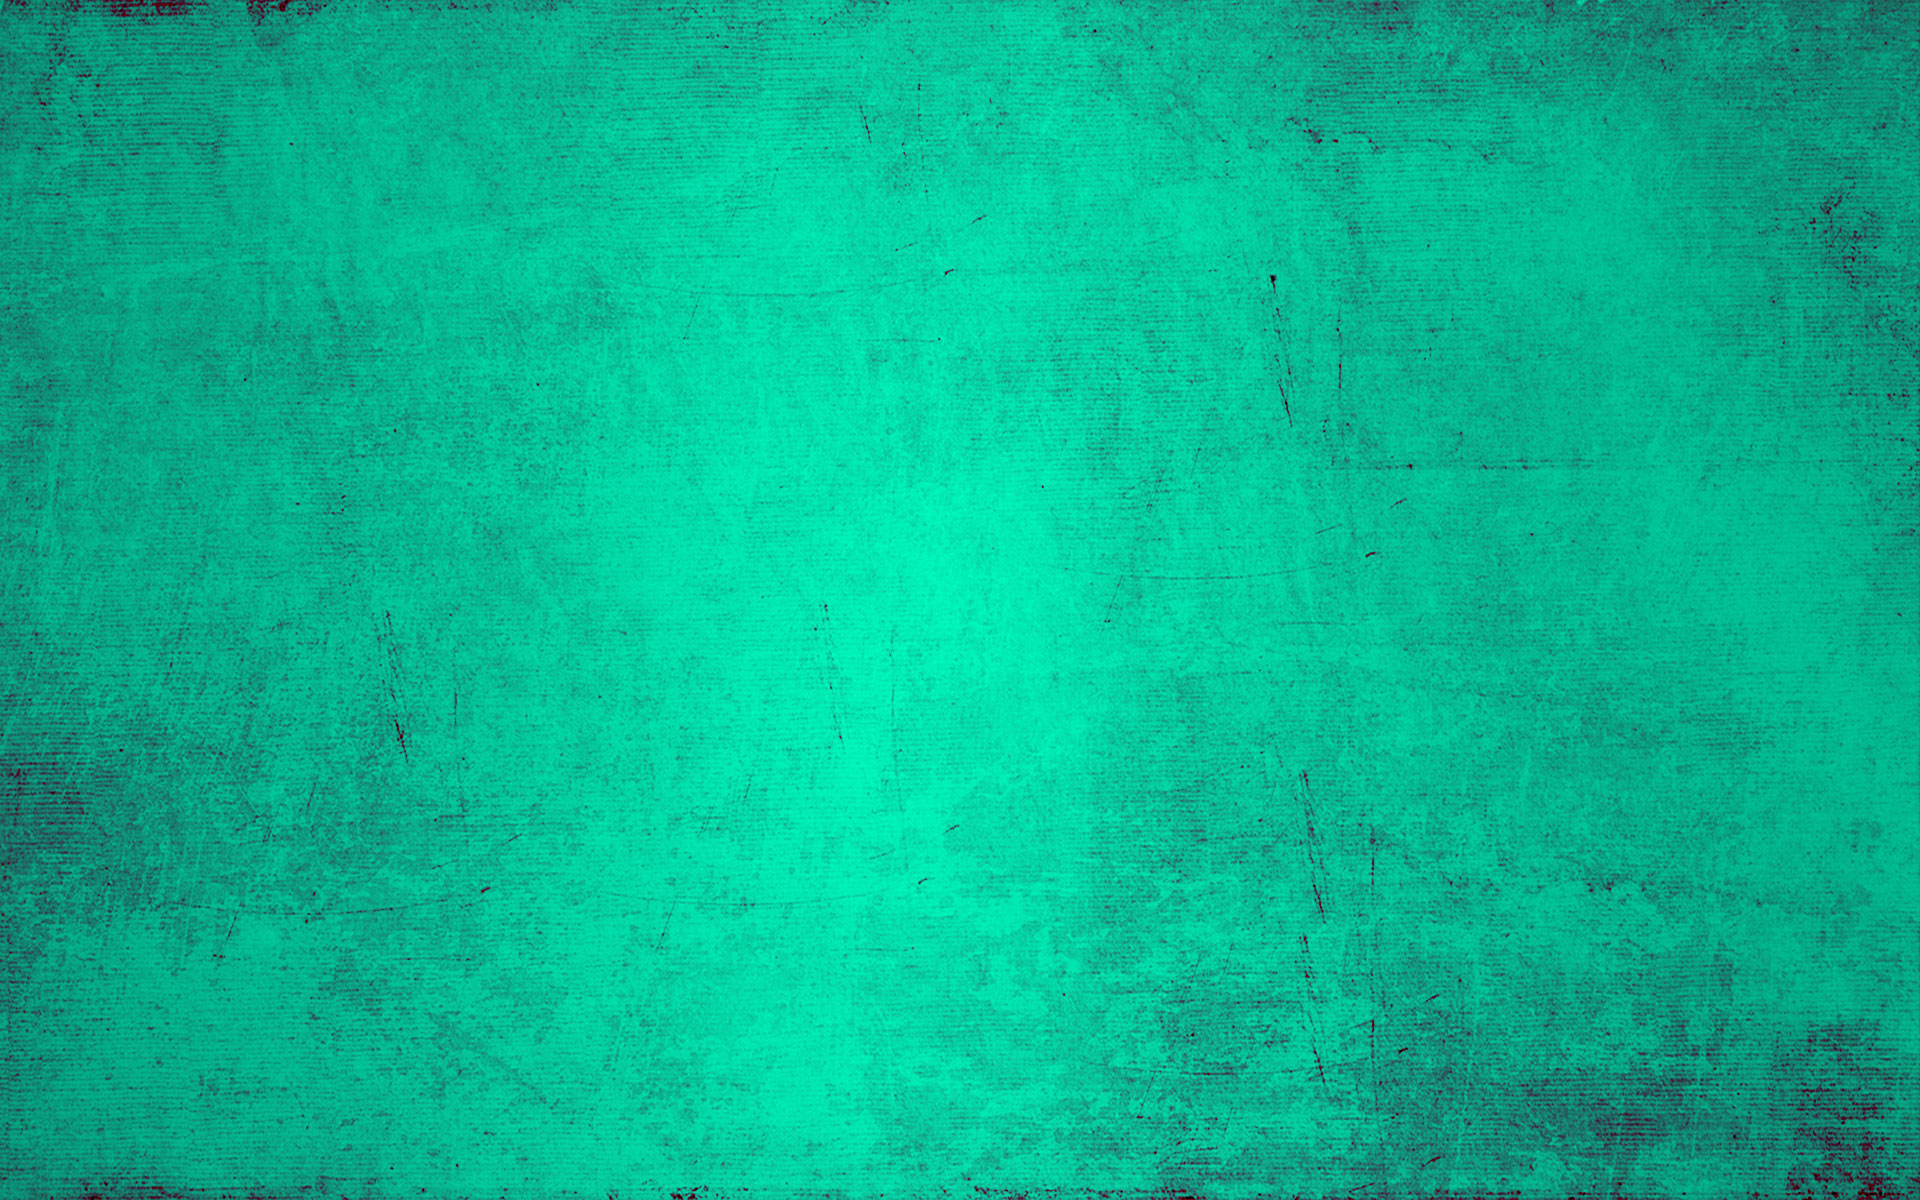 The Texture Of Teal And Turquoise: Textures Turquoise Wallpaper